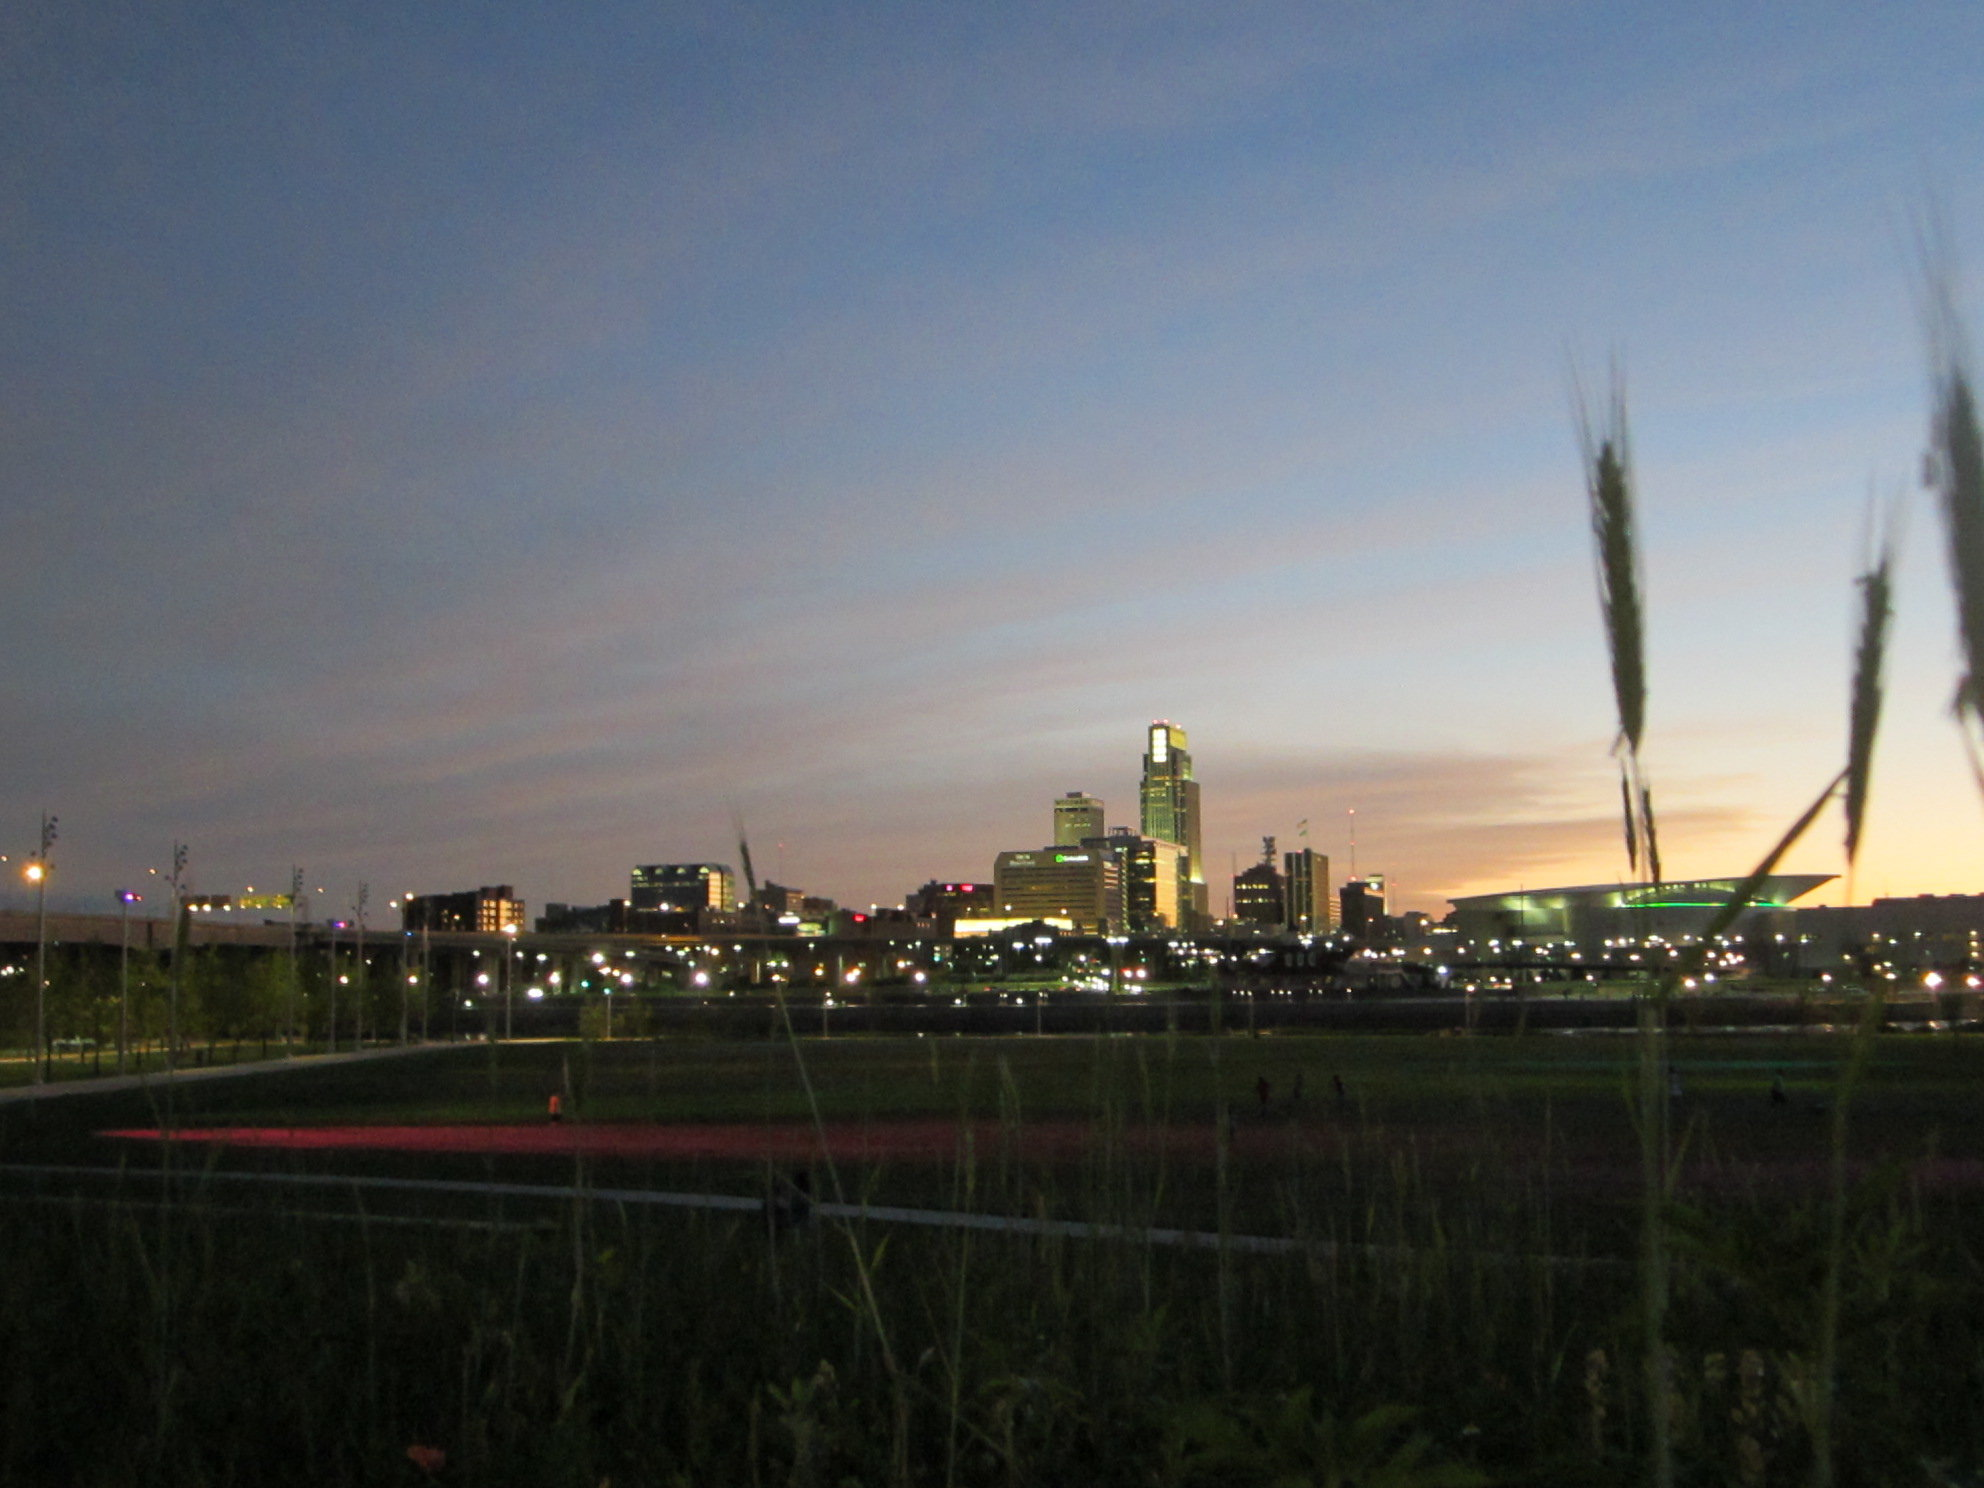 Omaha's downtown skyline